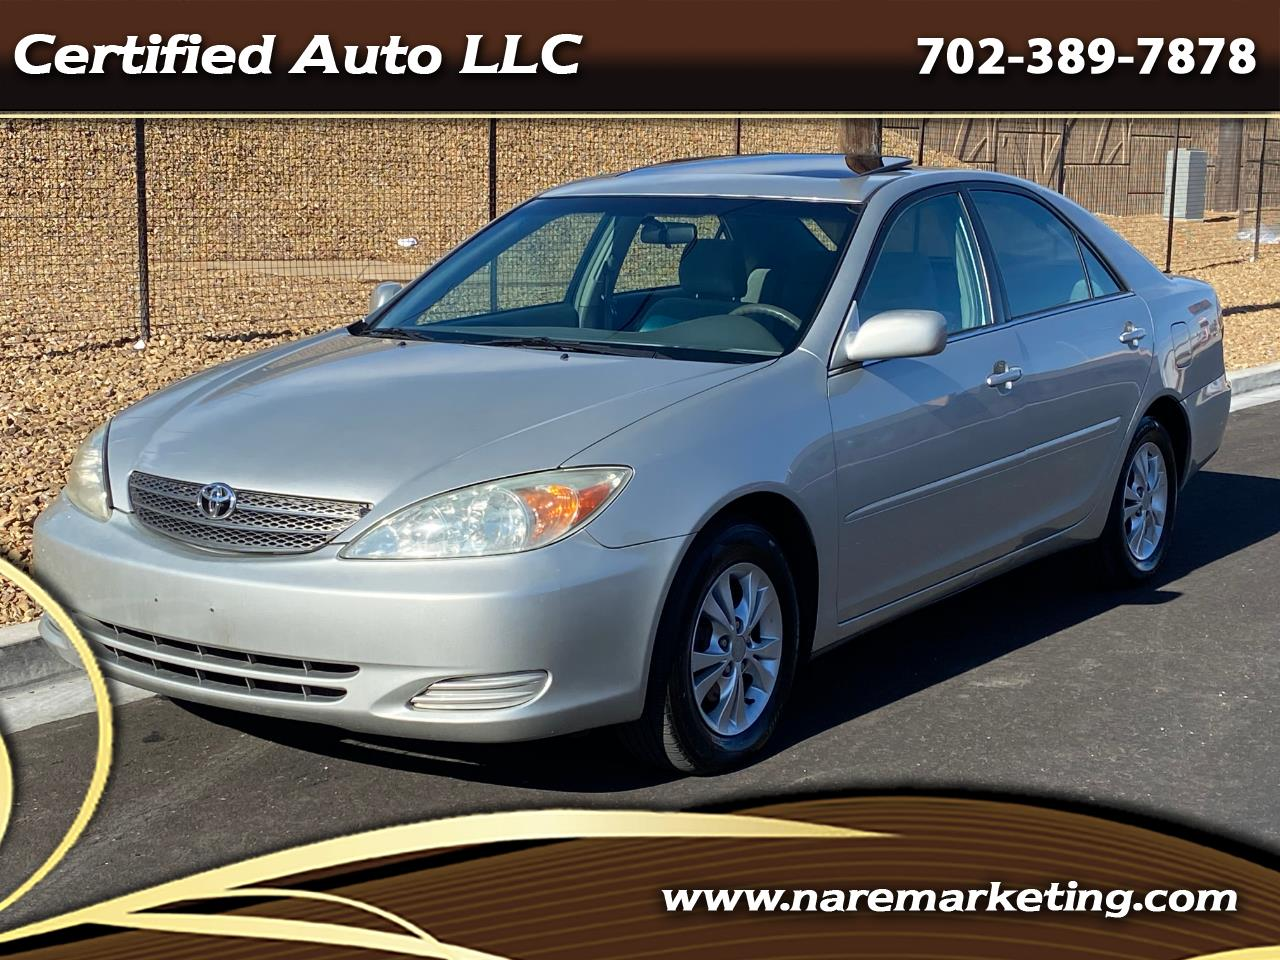 Toyota Camry 4dr Sdn XLE V6 Auto (Natl) 2004